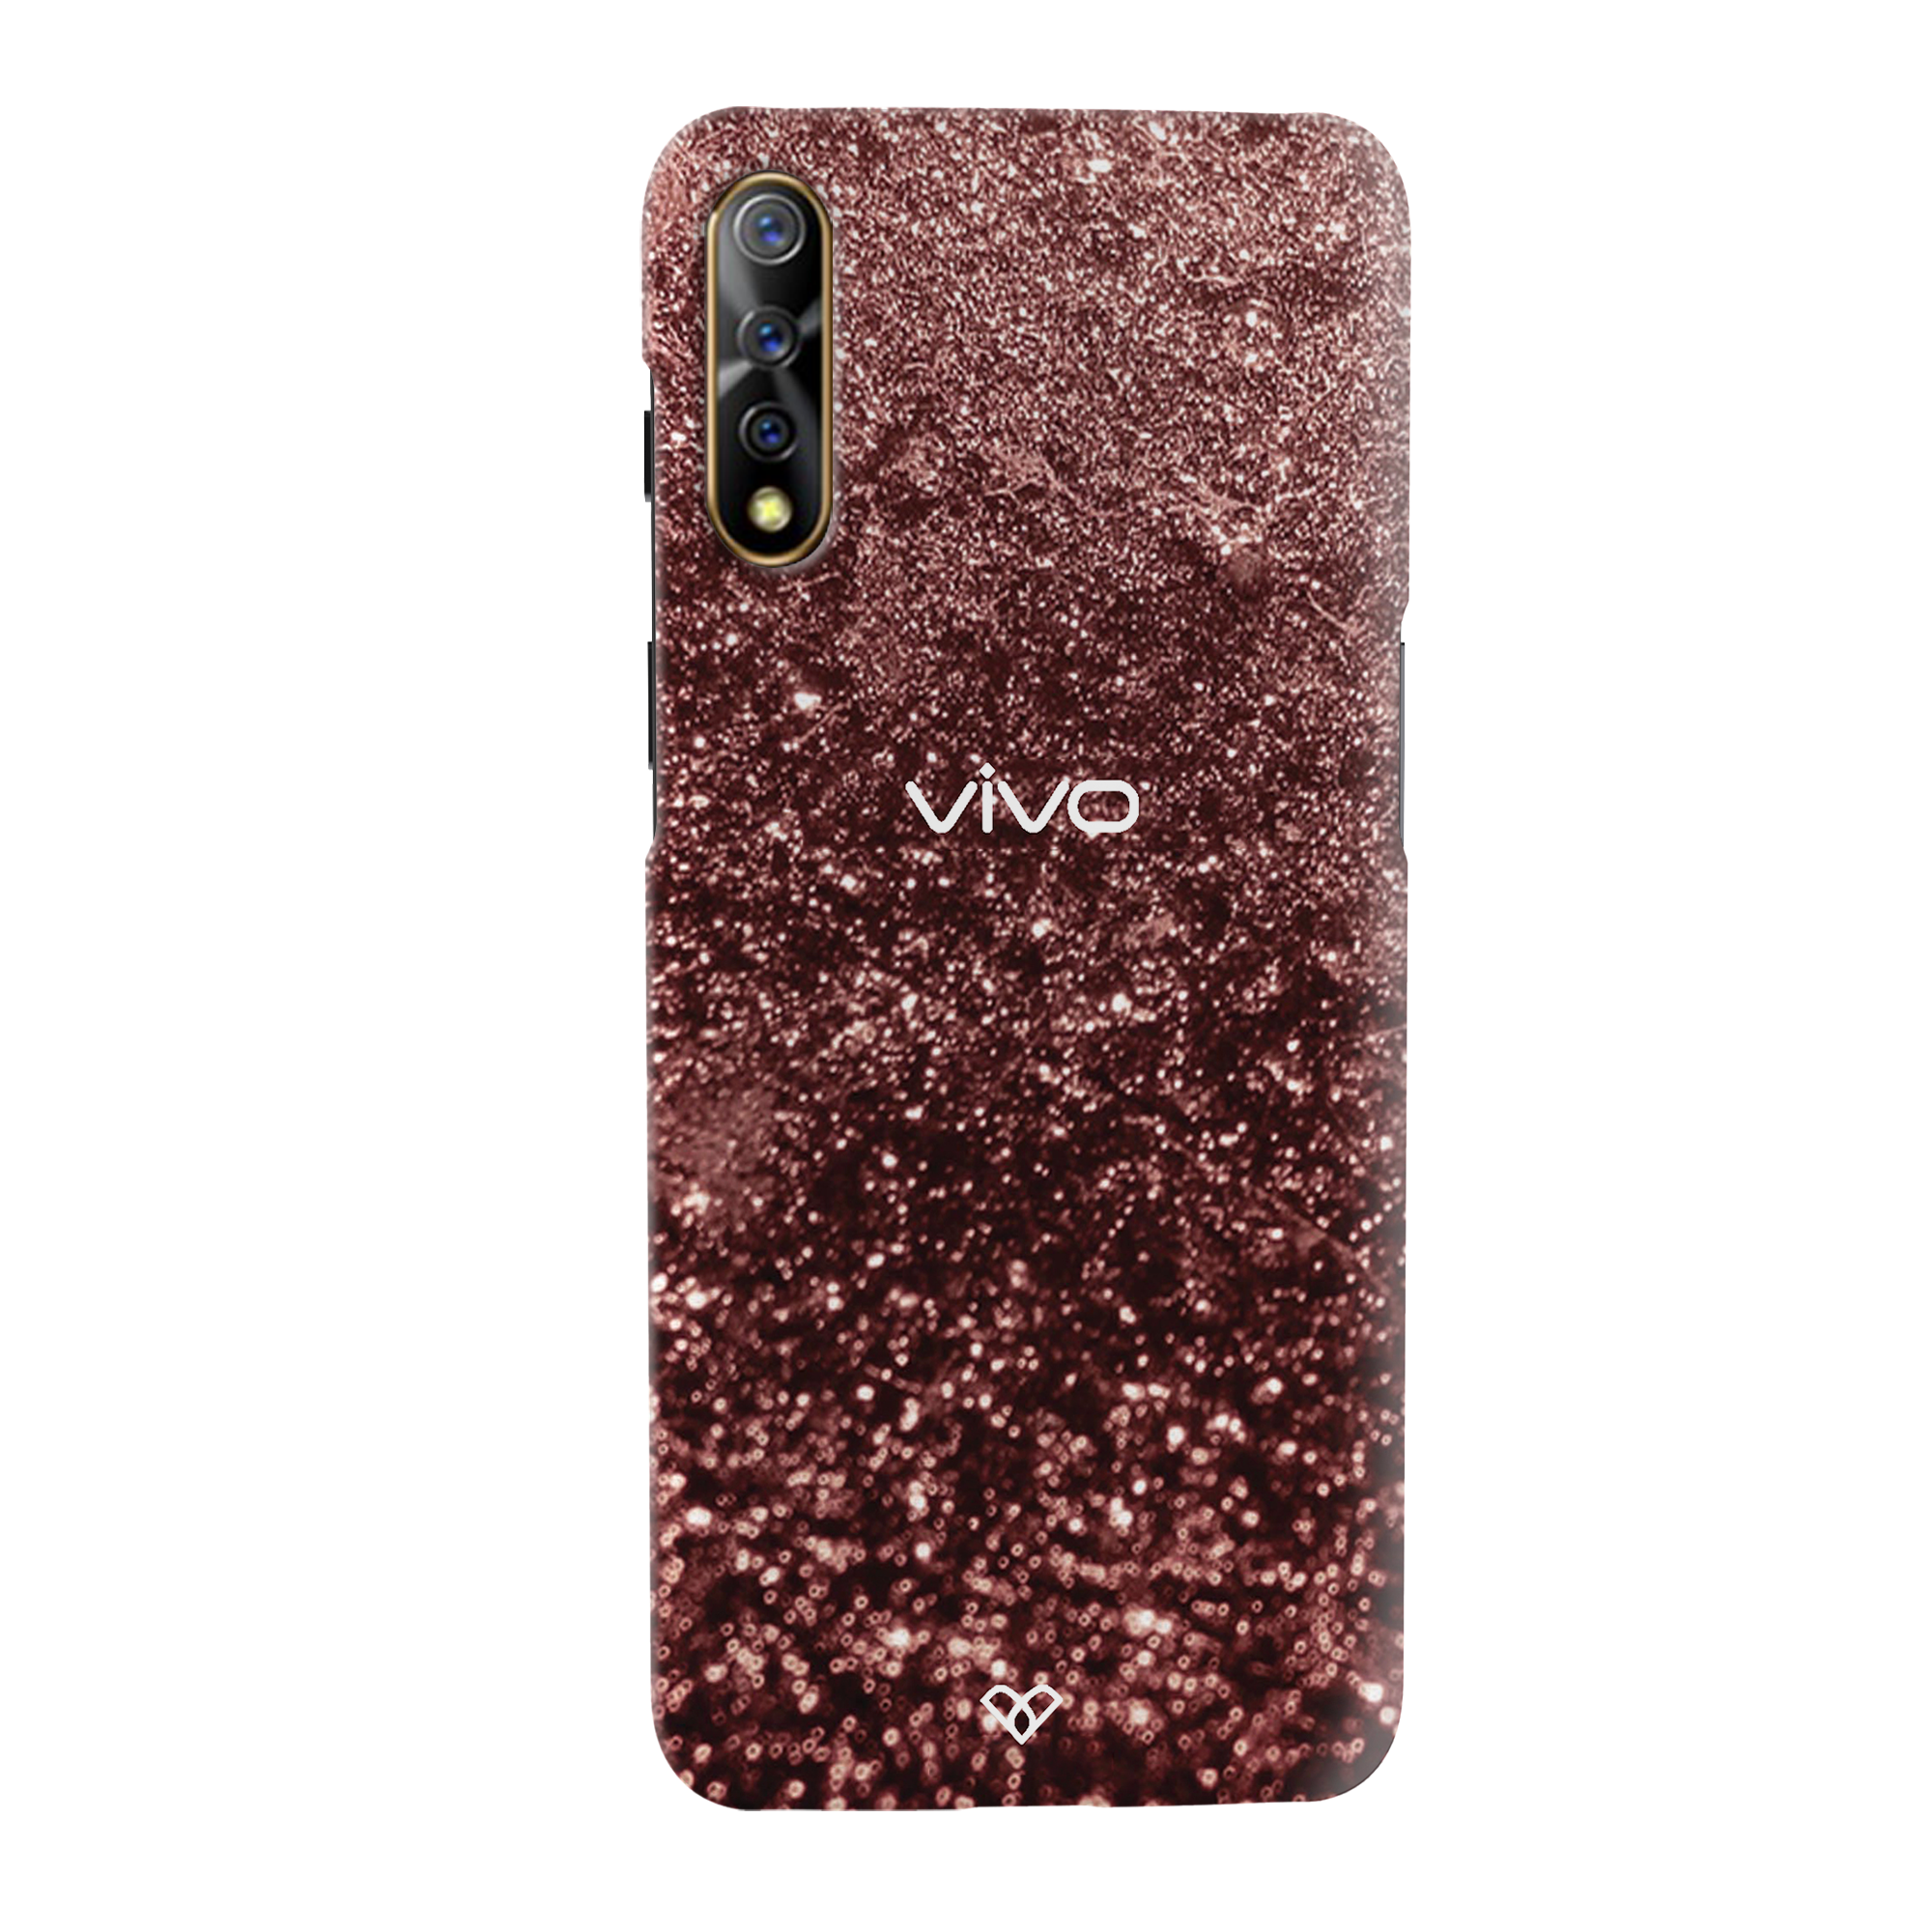 Copper Slim Case And Cover For Vivo S1